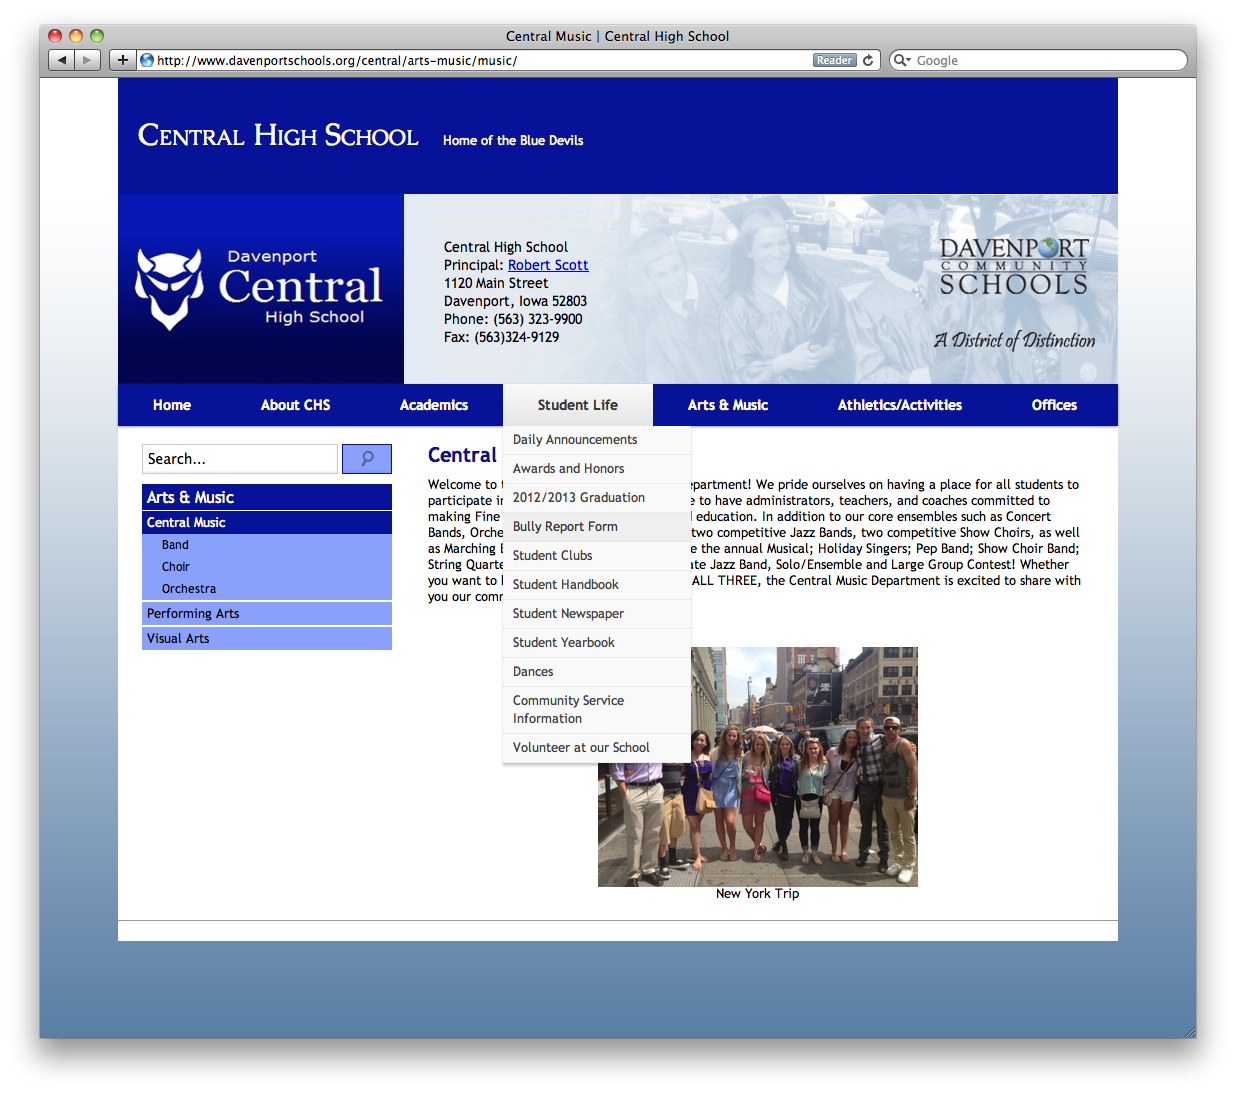 Davenport Central High School Home Page